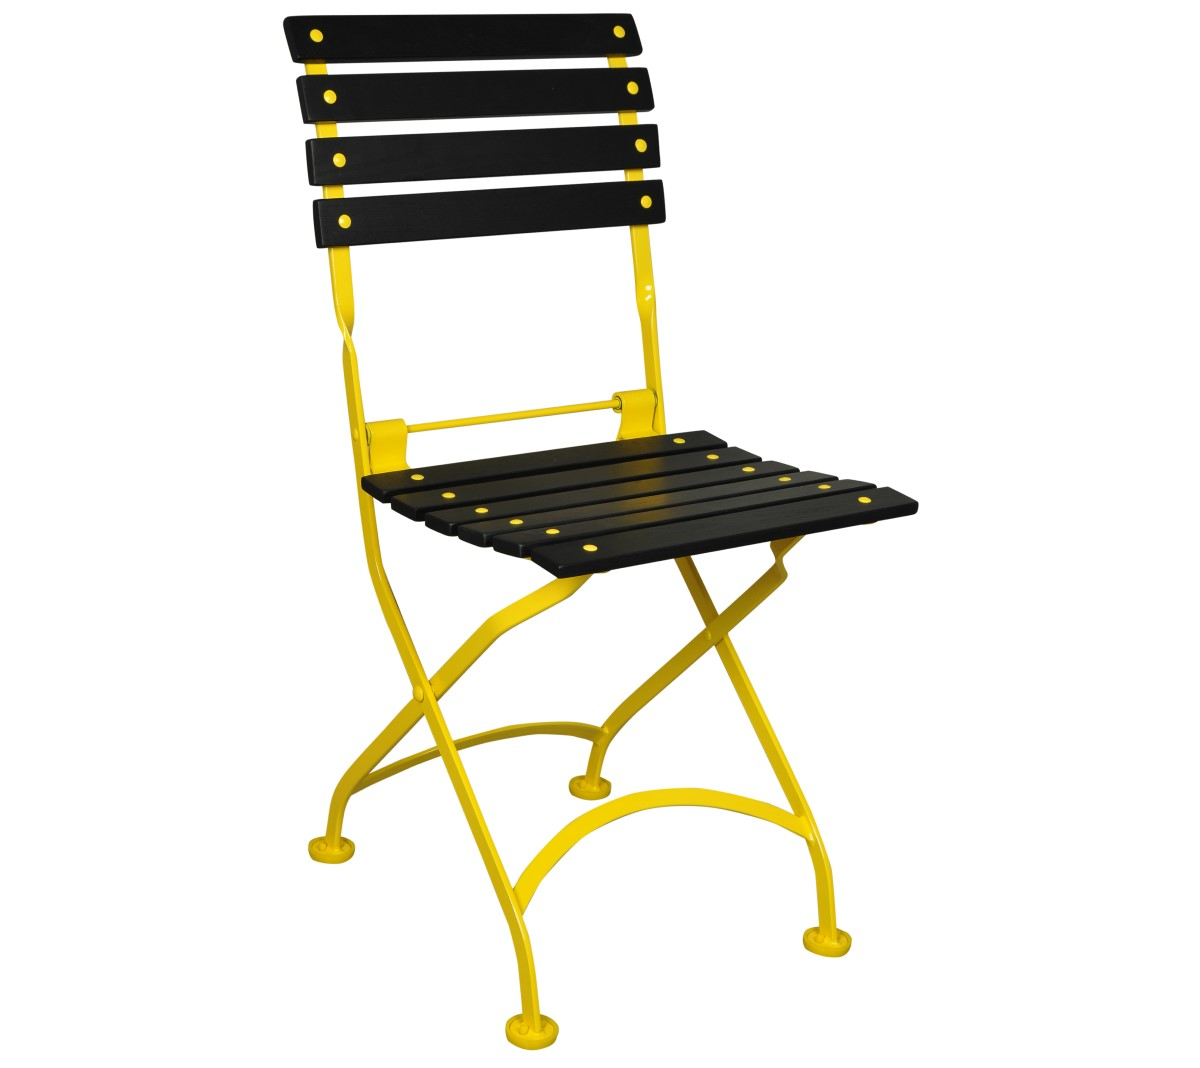 Veronique Chair 5504 - Black Slats and Yellow Frame